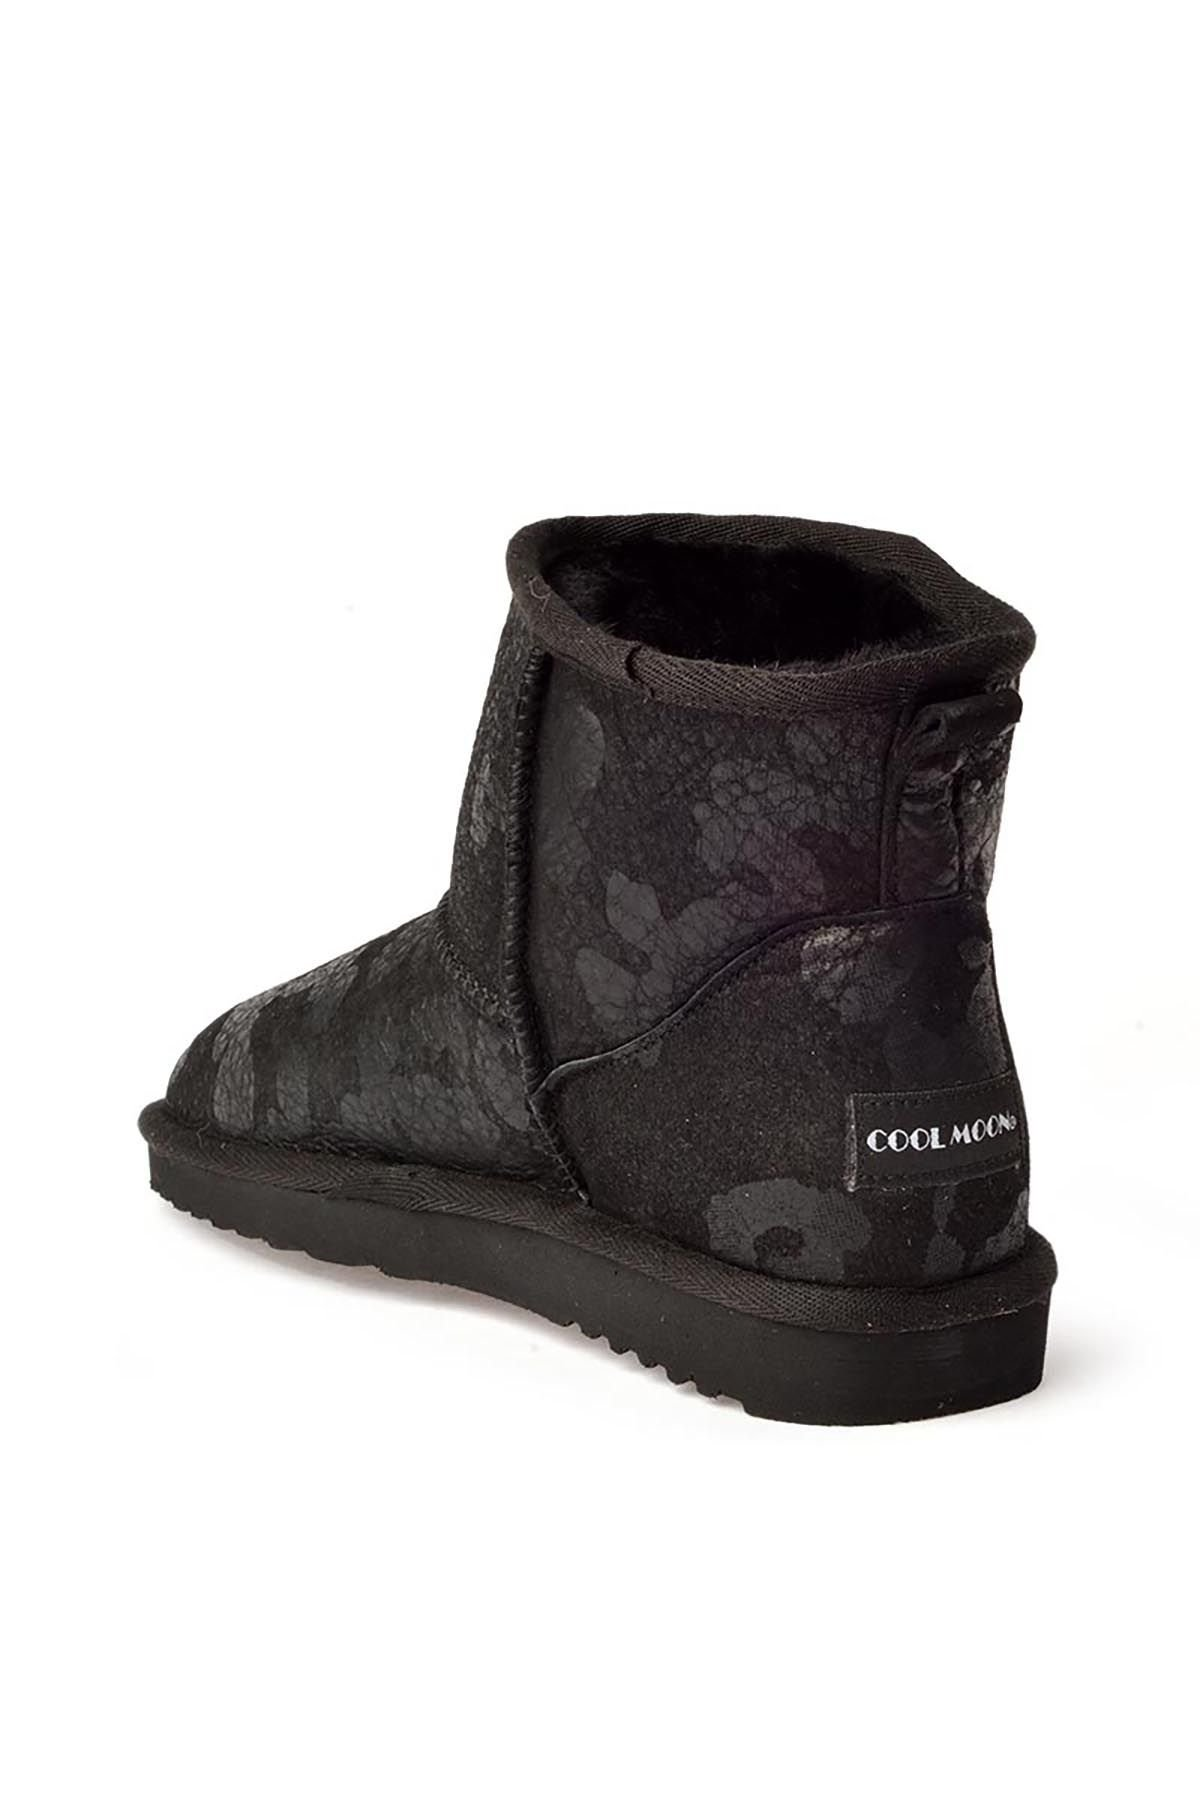 Cool Moon Camouflage Women Uggs From Genuine Fur Black